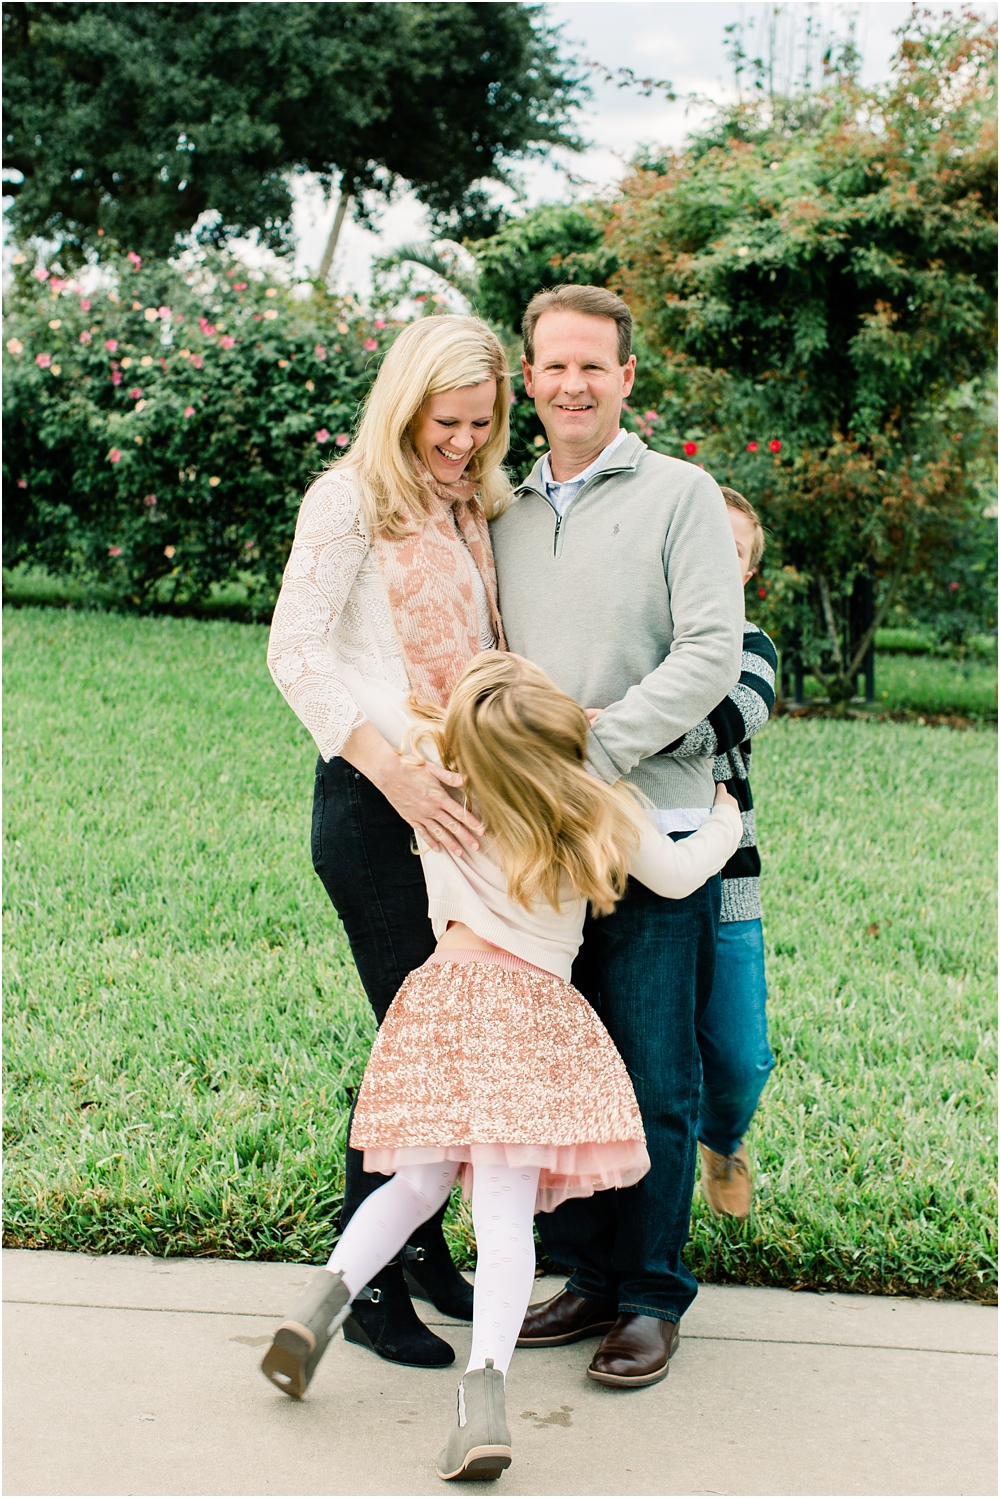 Ashley Holstein Photography | Lakeland Florida Family Photographer Hollis Gardens